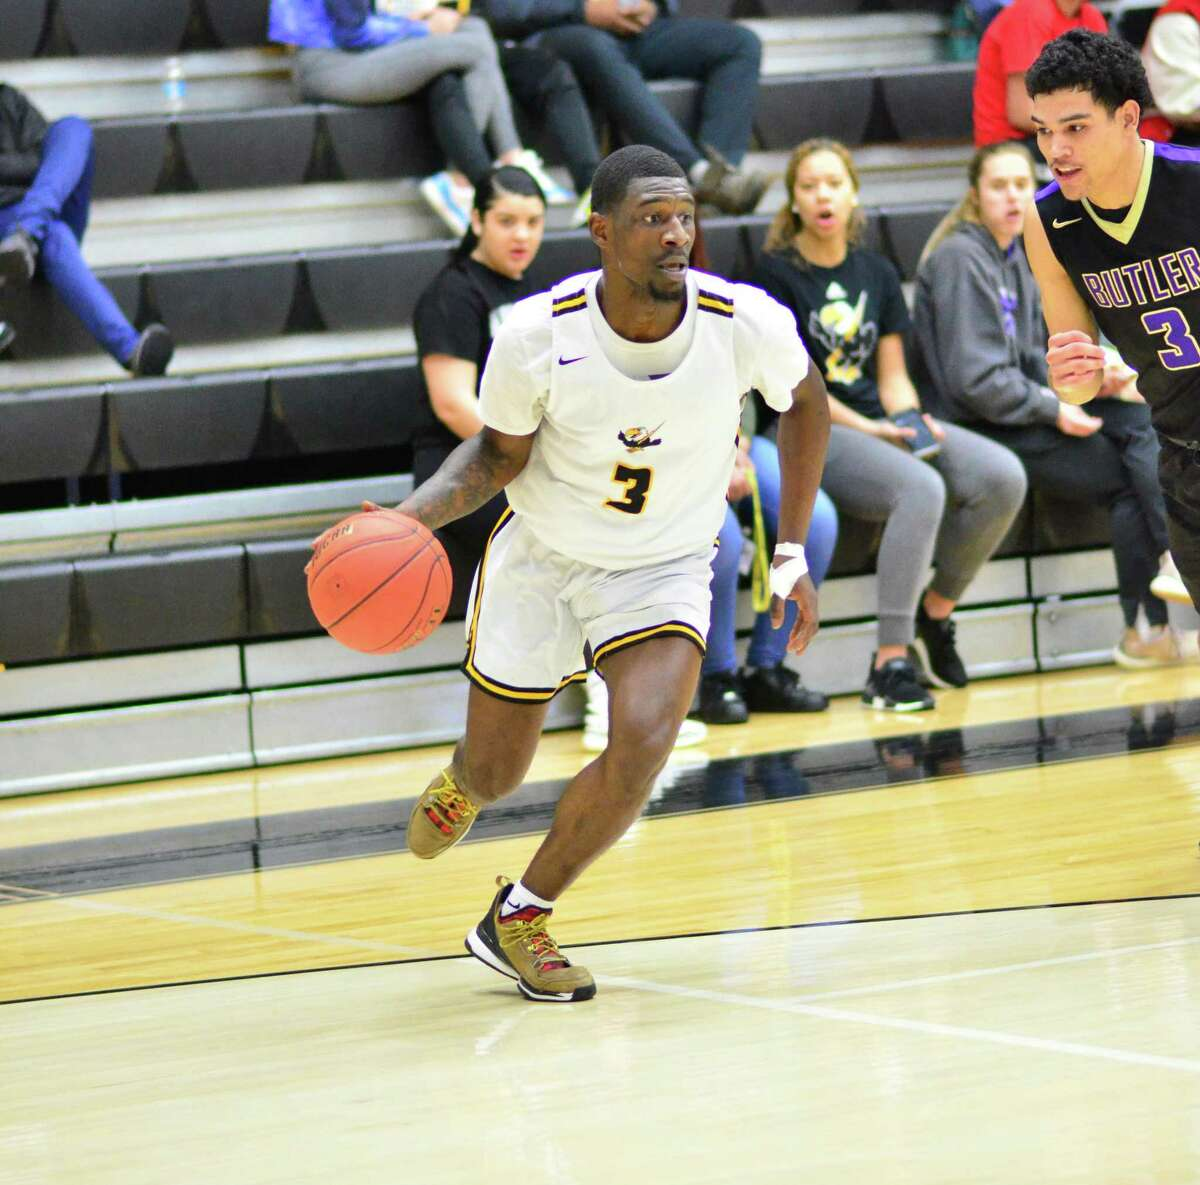 Cloud County Community College basketball player Jay Lewis. A Conroe High School alum.